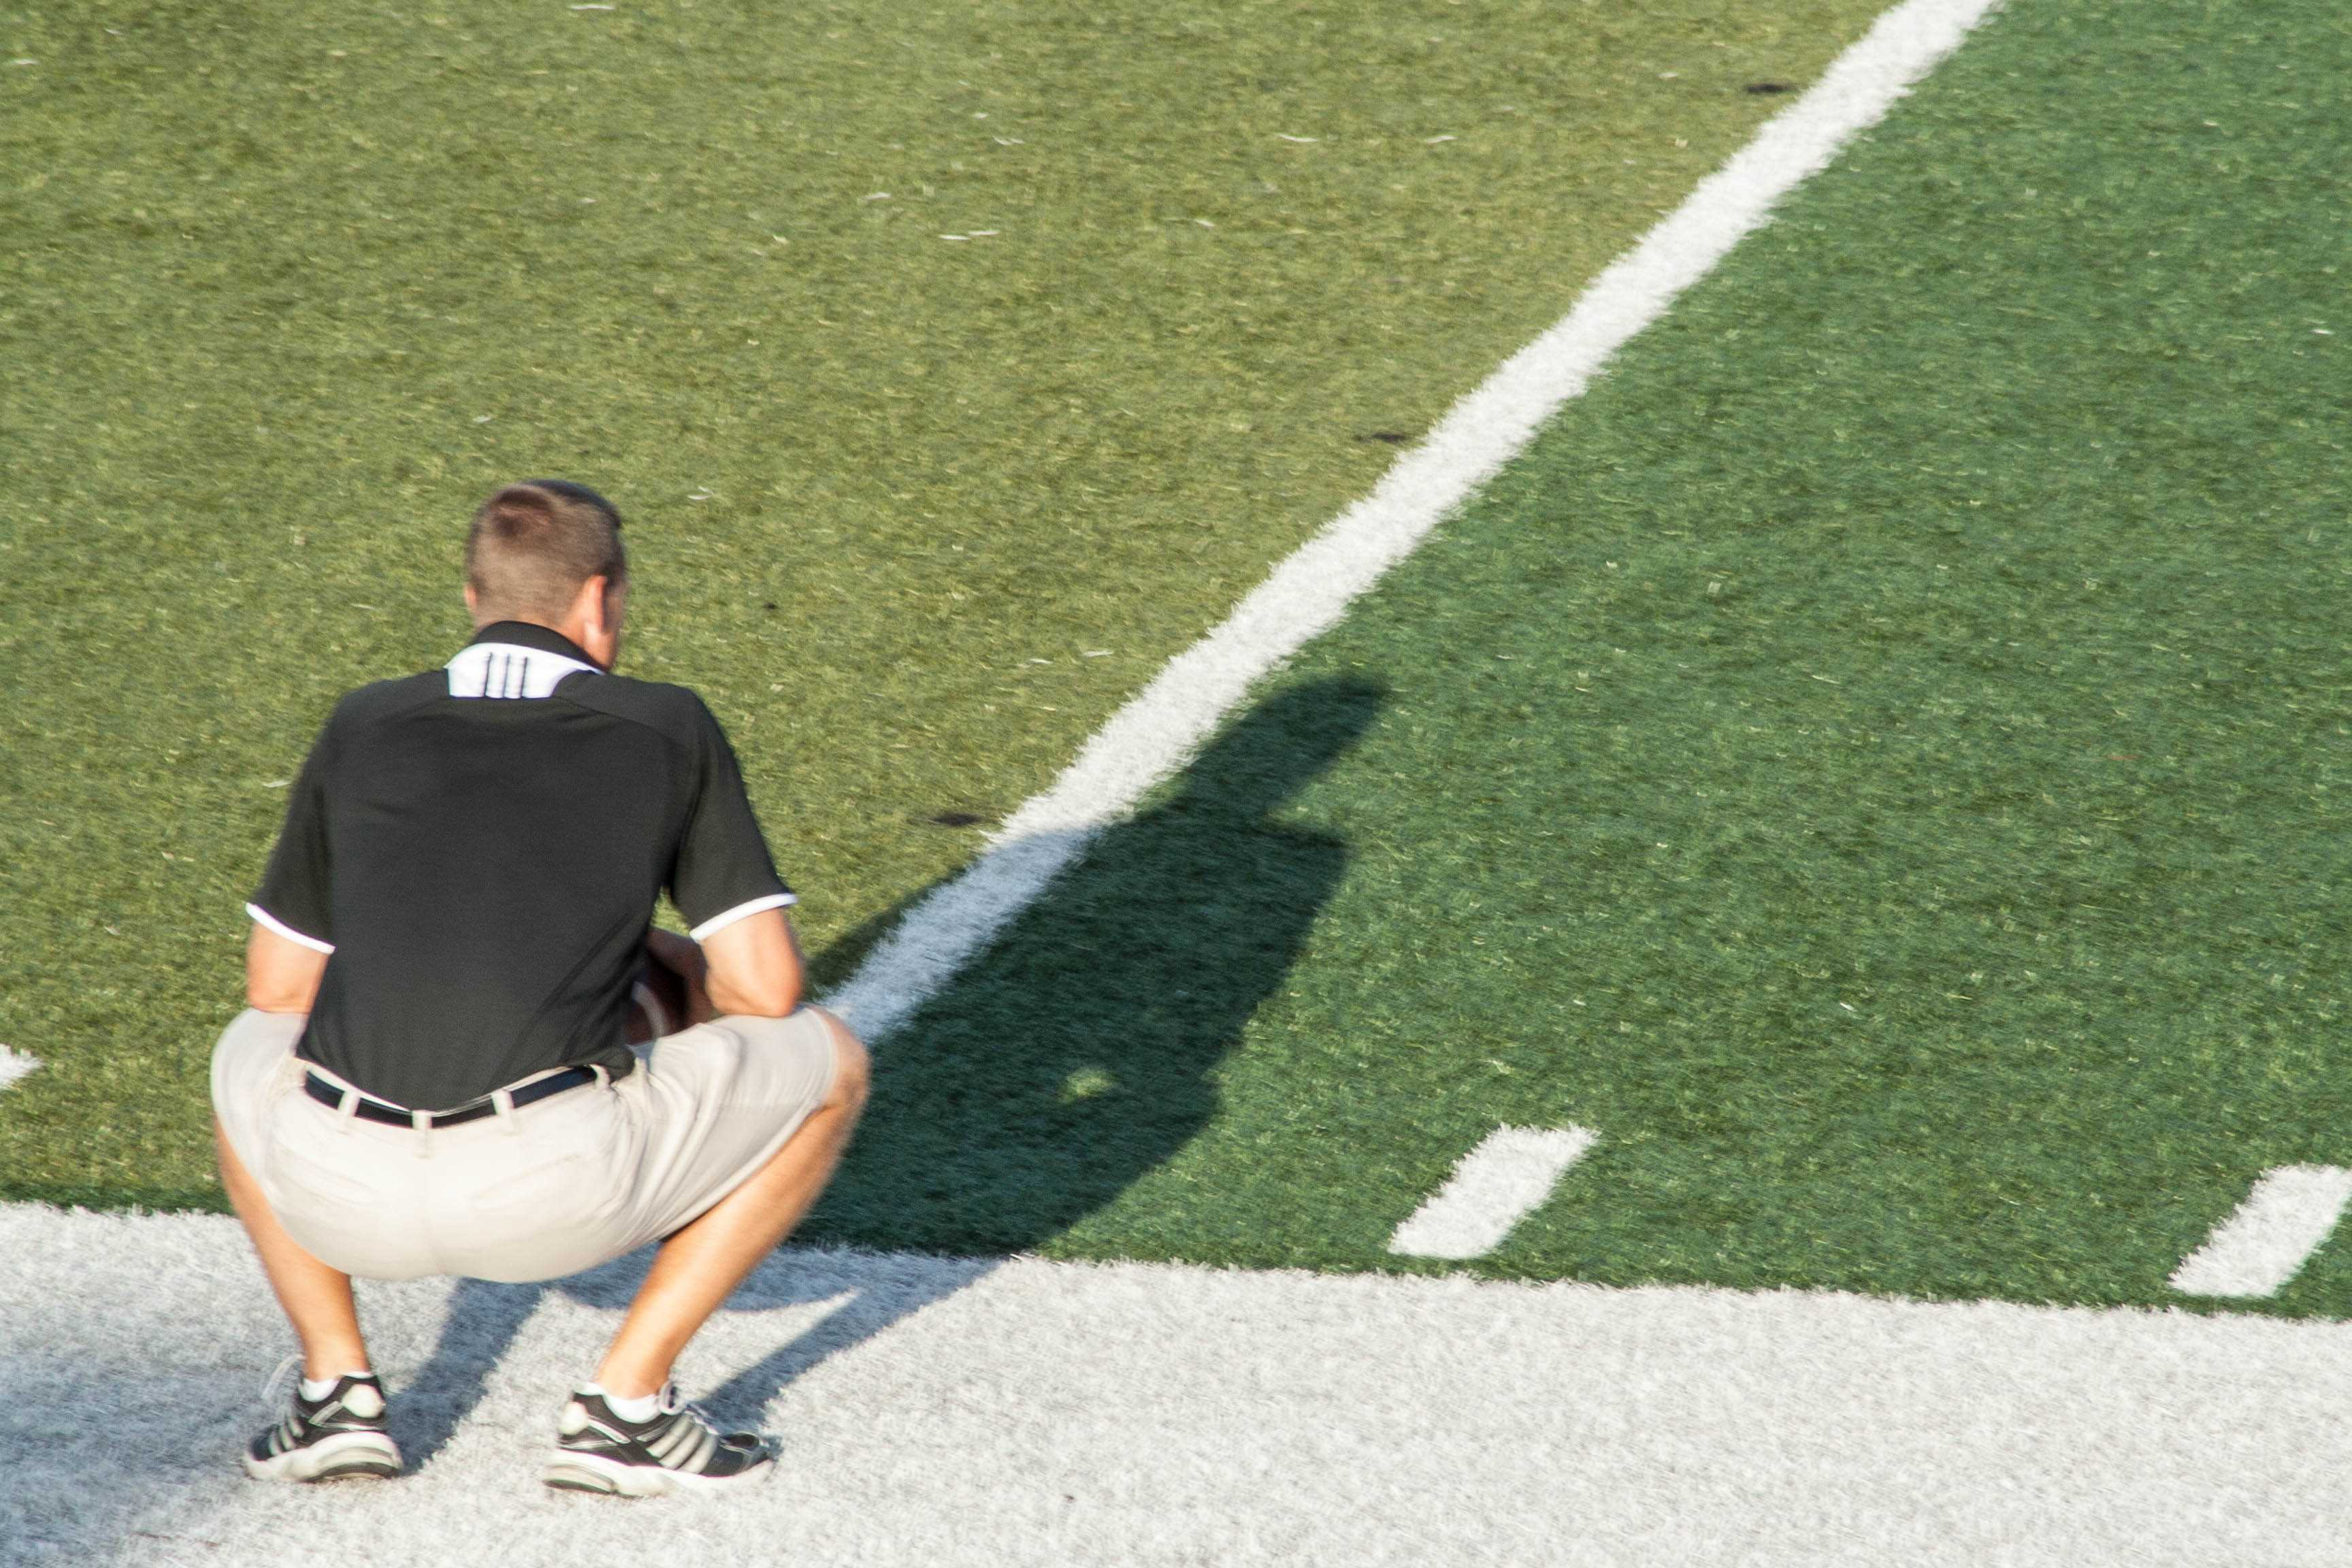 A+football+coach+crouches+down+as+he+watches+his+team+scrimmage.+